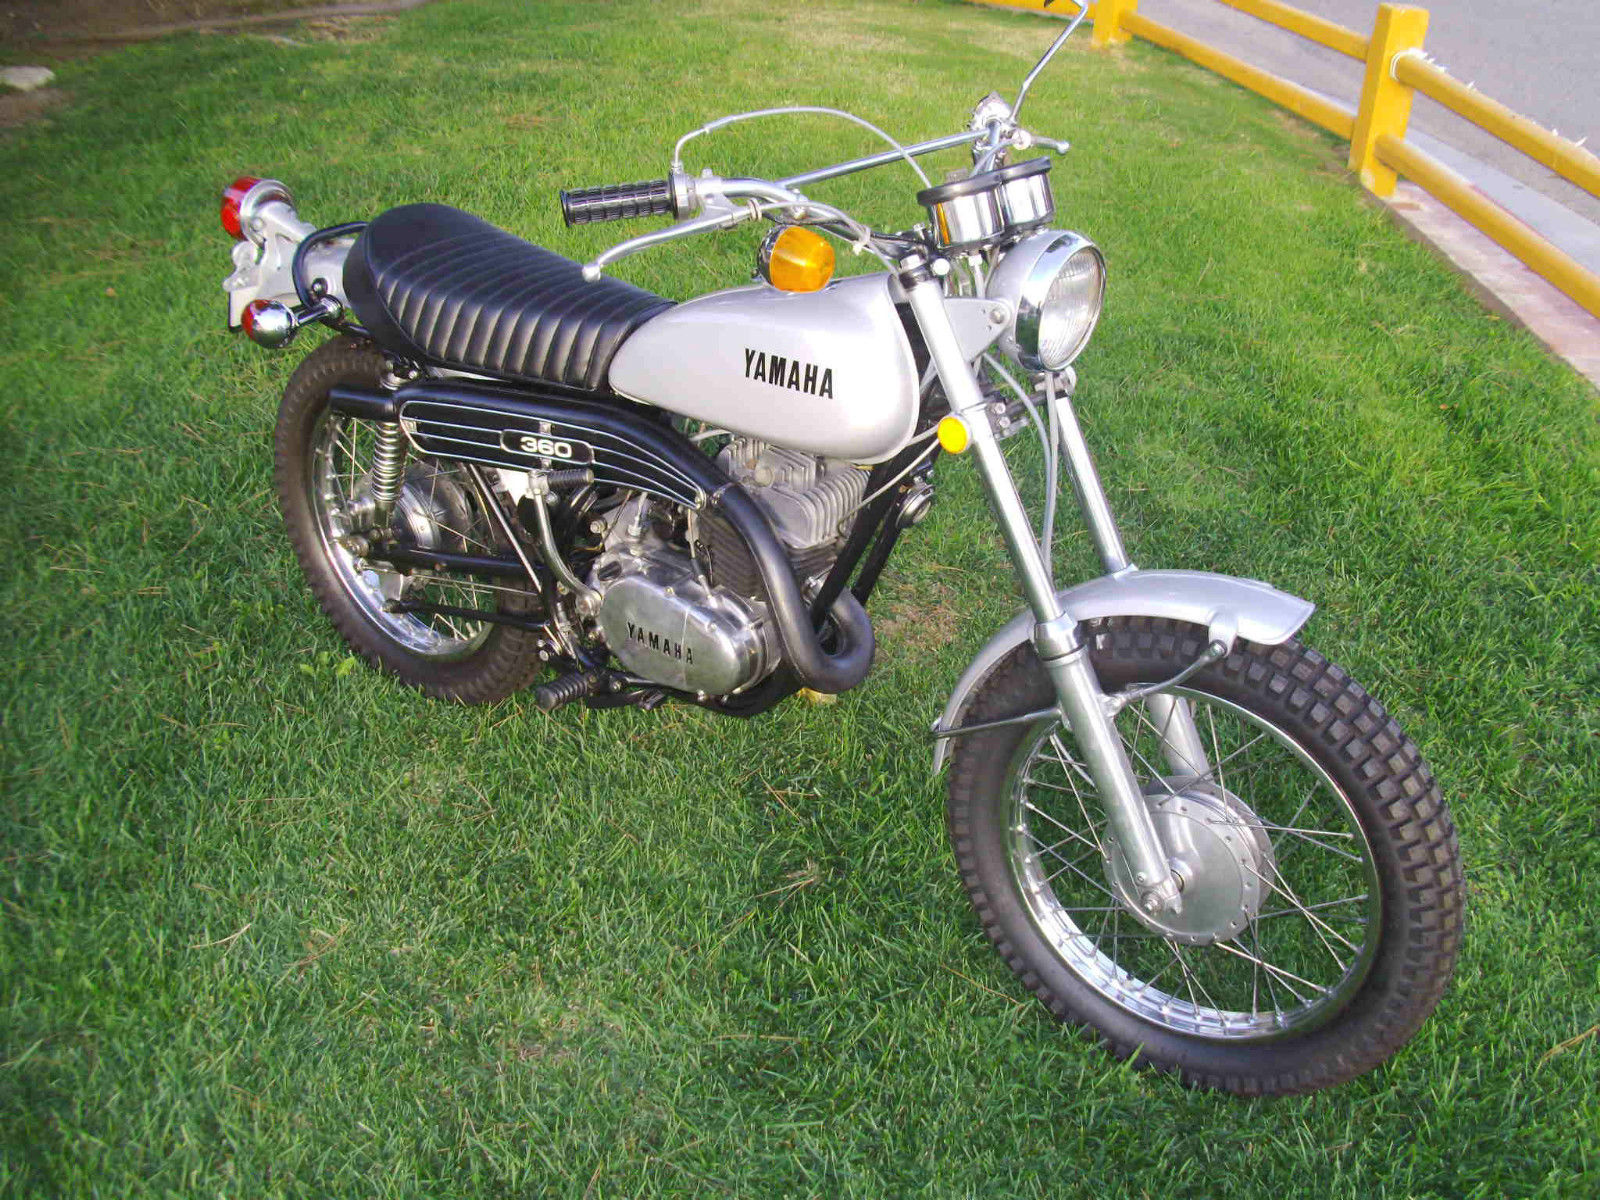 It175 Wiring Diagram All Kind Of Diagrams 1974 Yamaha 360 Enduro 40 1972 250 1971 Honda Cb175 Stock Vintage Classic Unrestored Cb Not A 1982